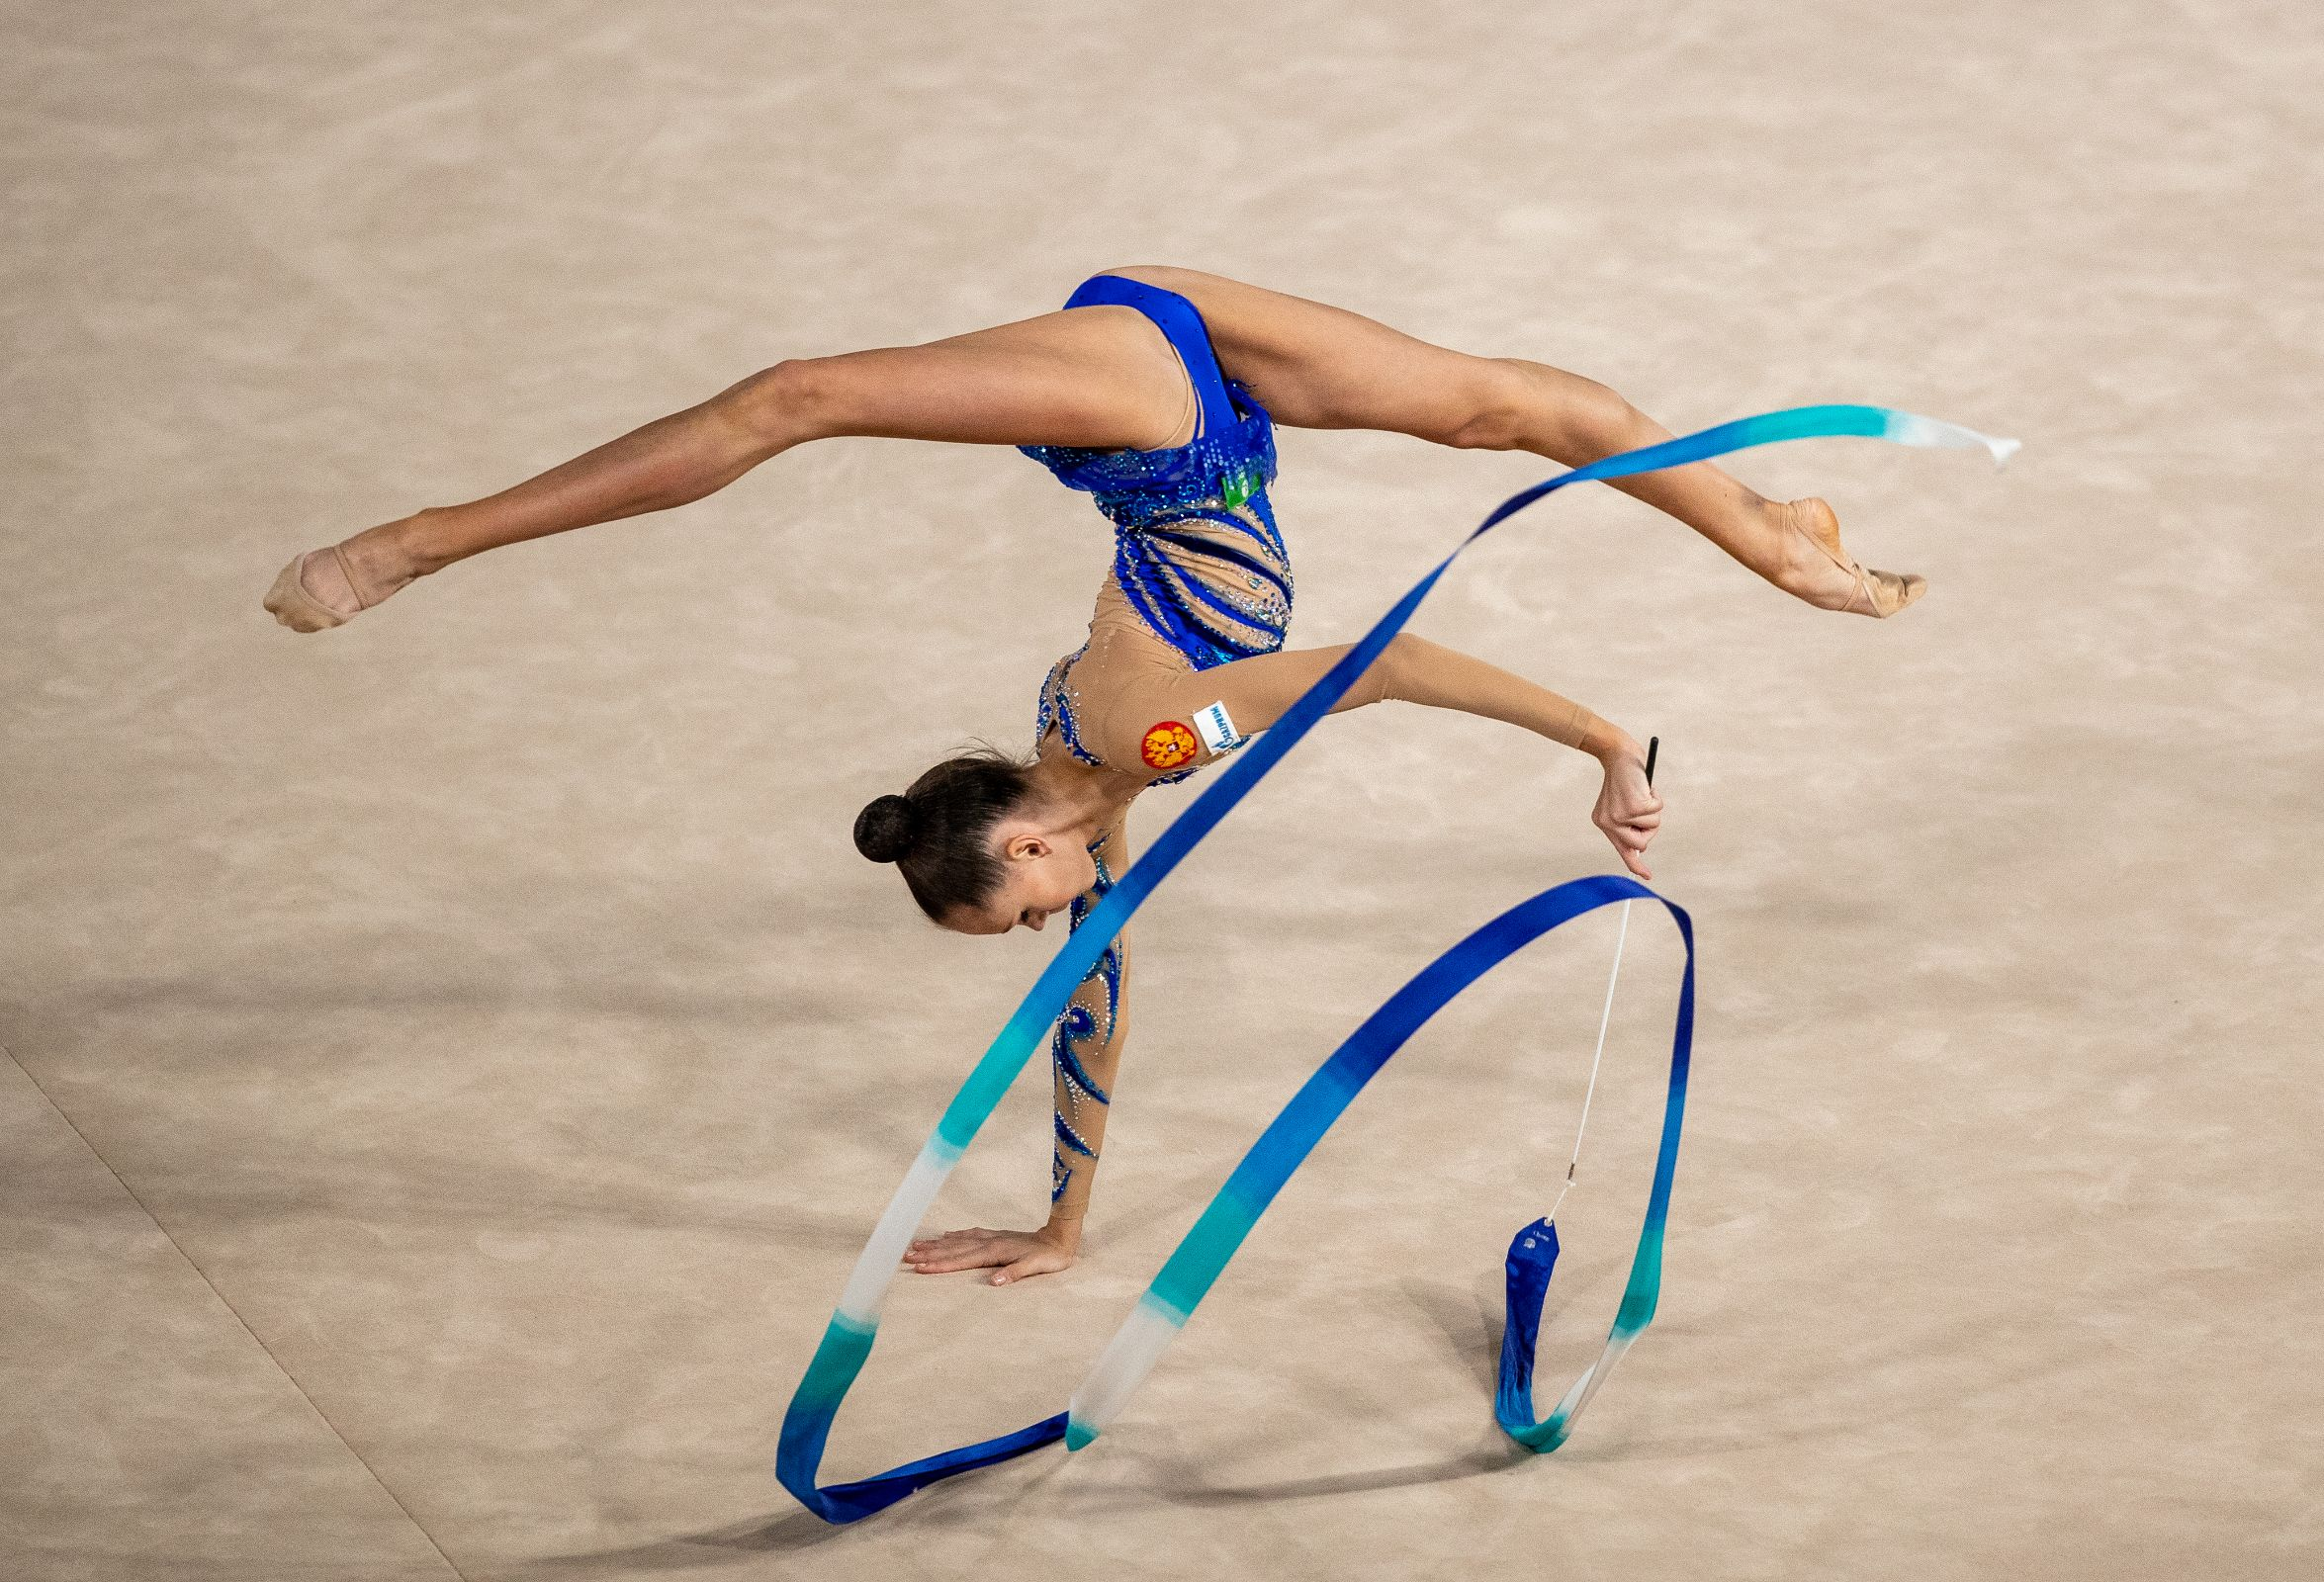 gymnastics rhythmic summer olympic sport